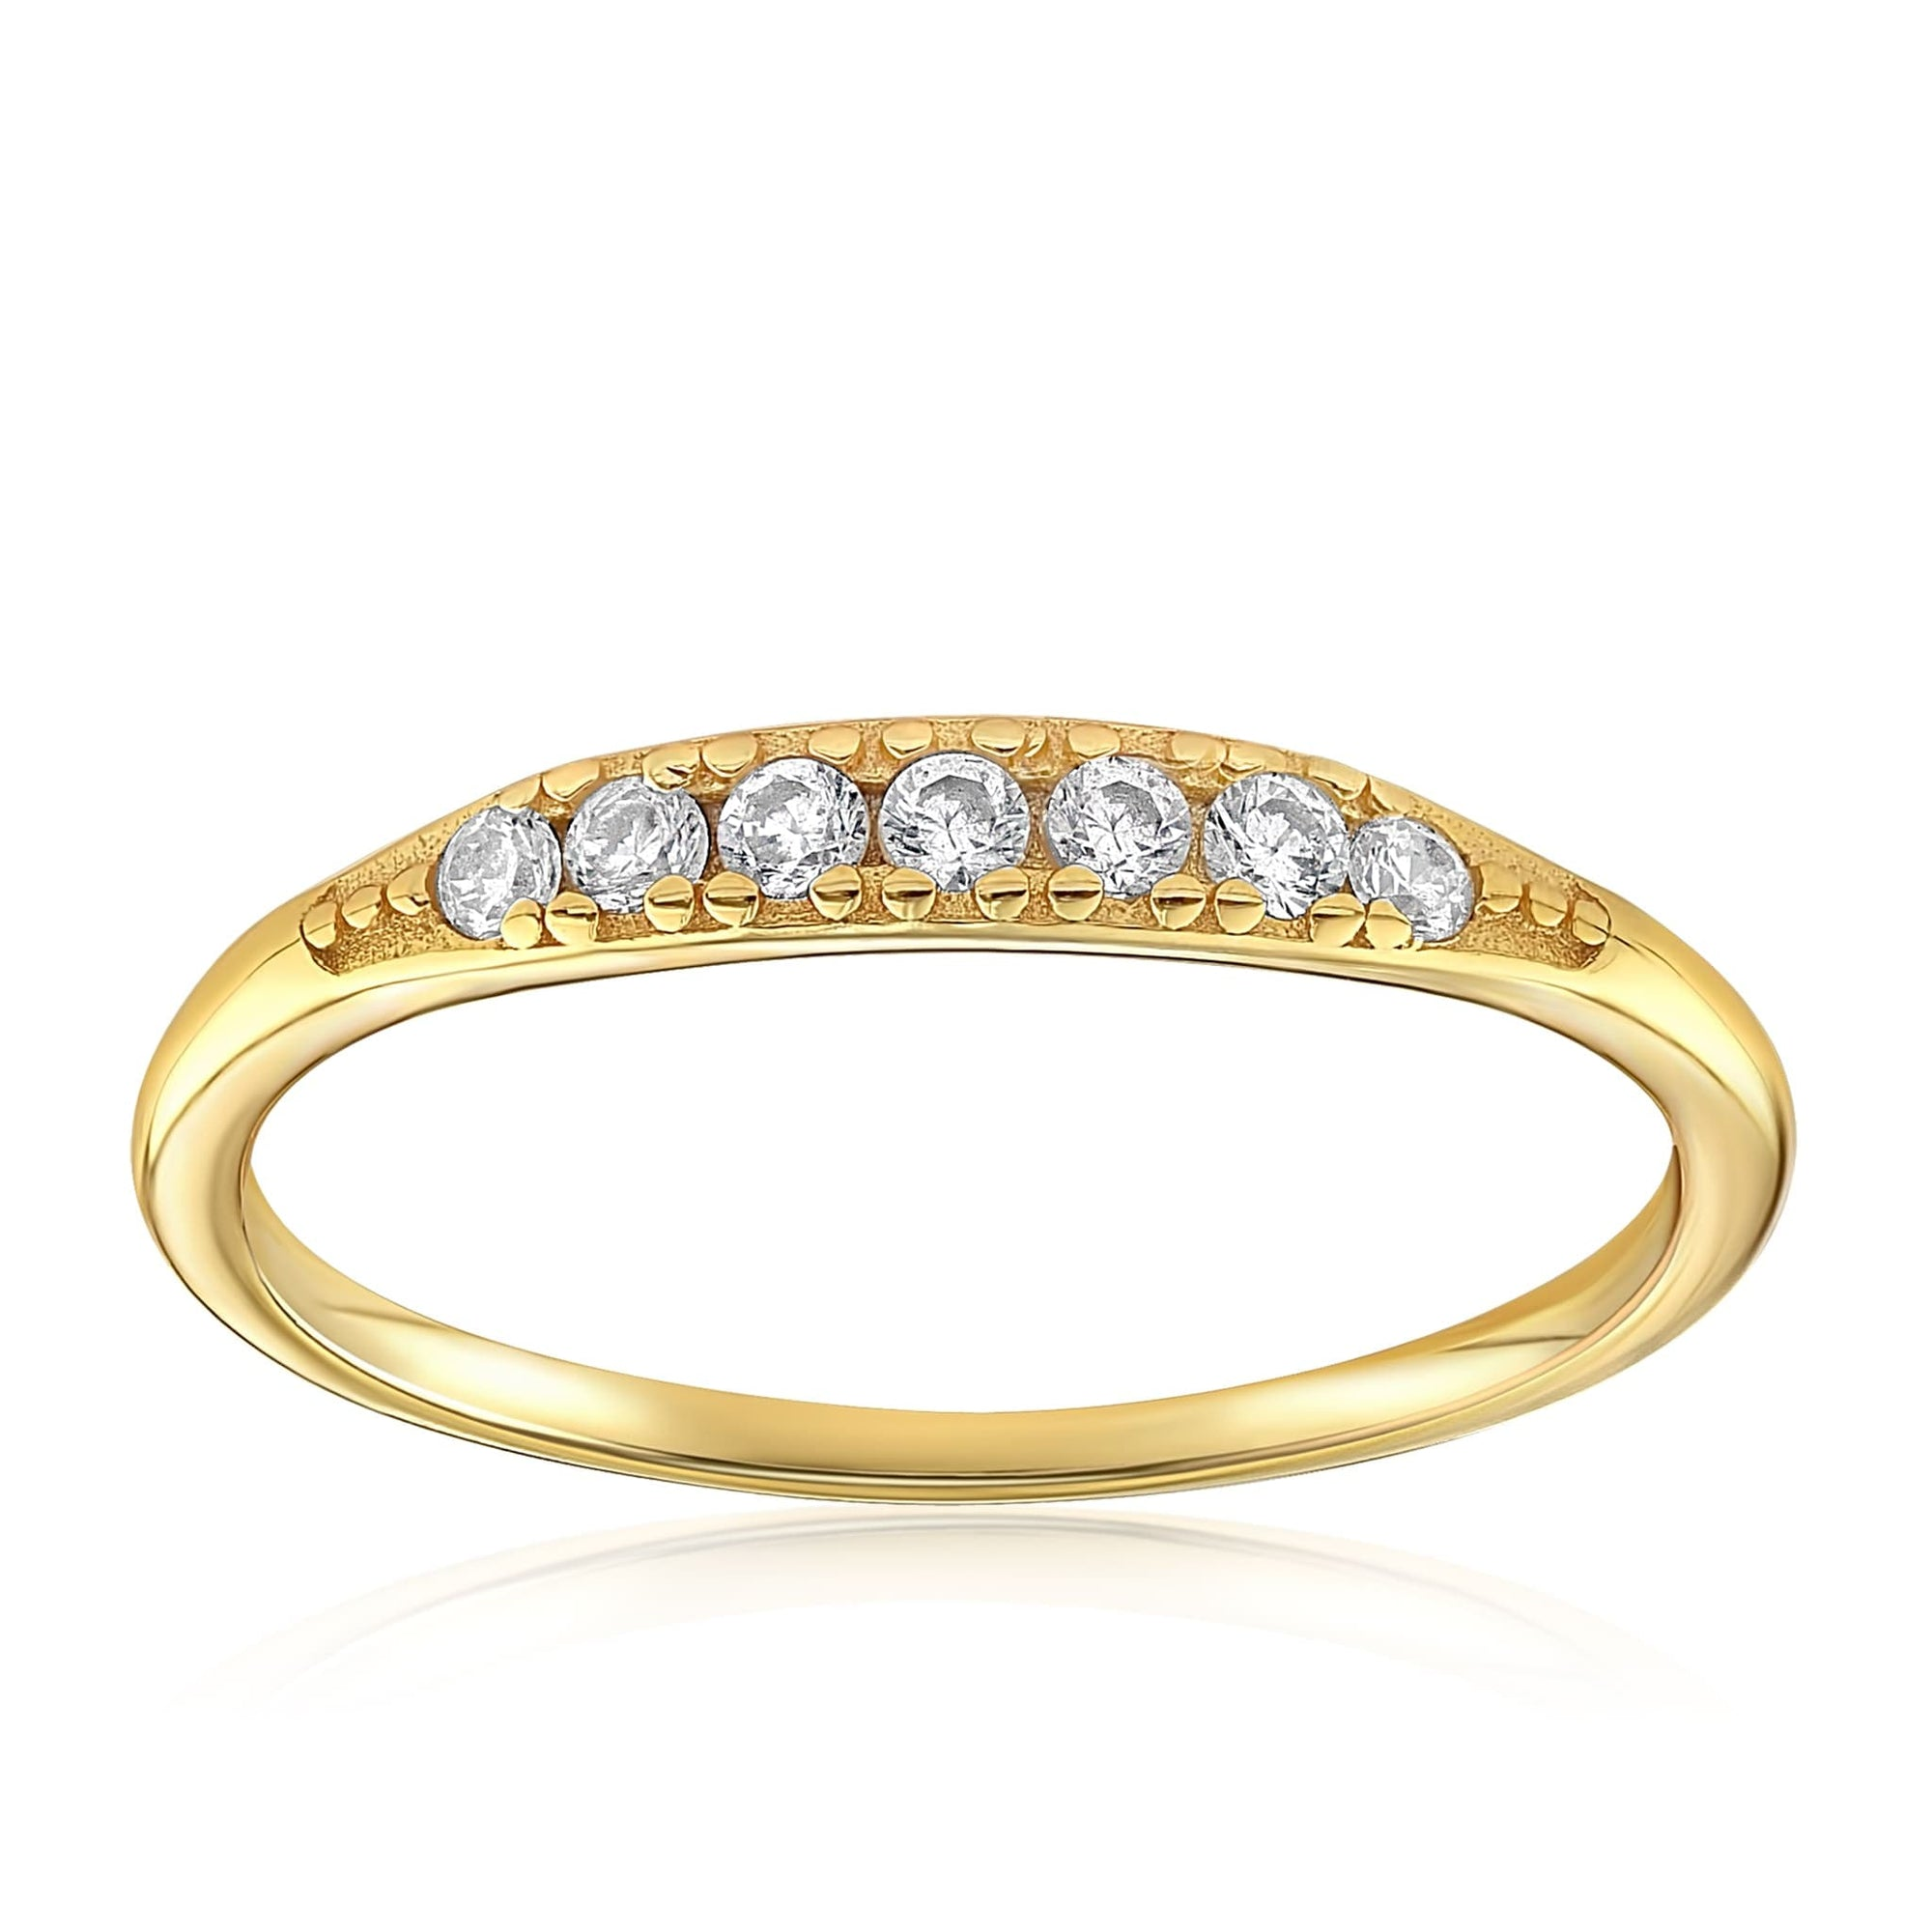 Kathleen Stack Ring - Front View Facing Up - 18K Yellow Gold Vermeil